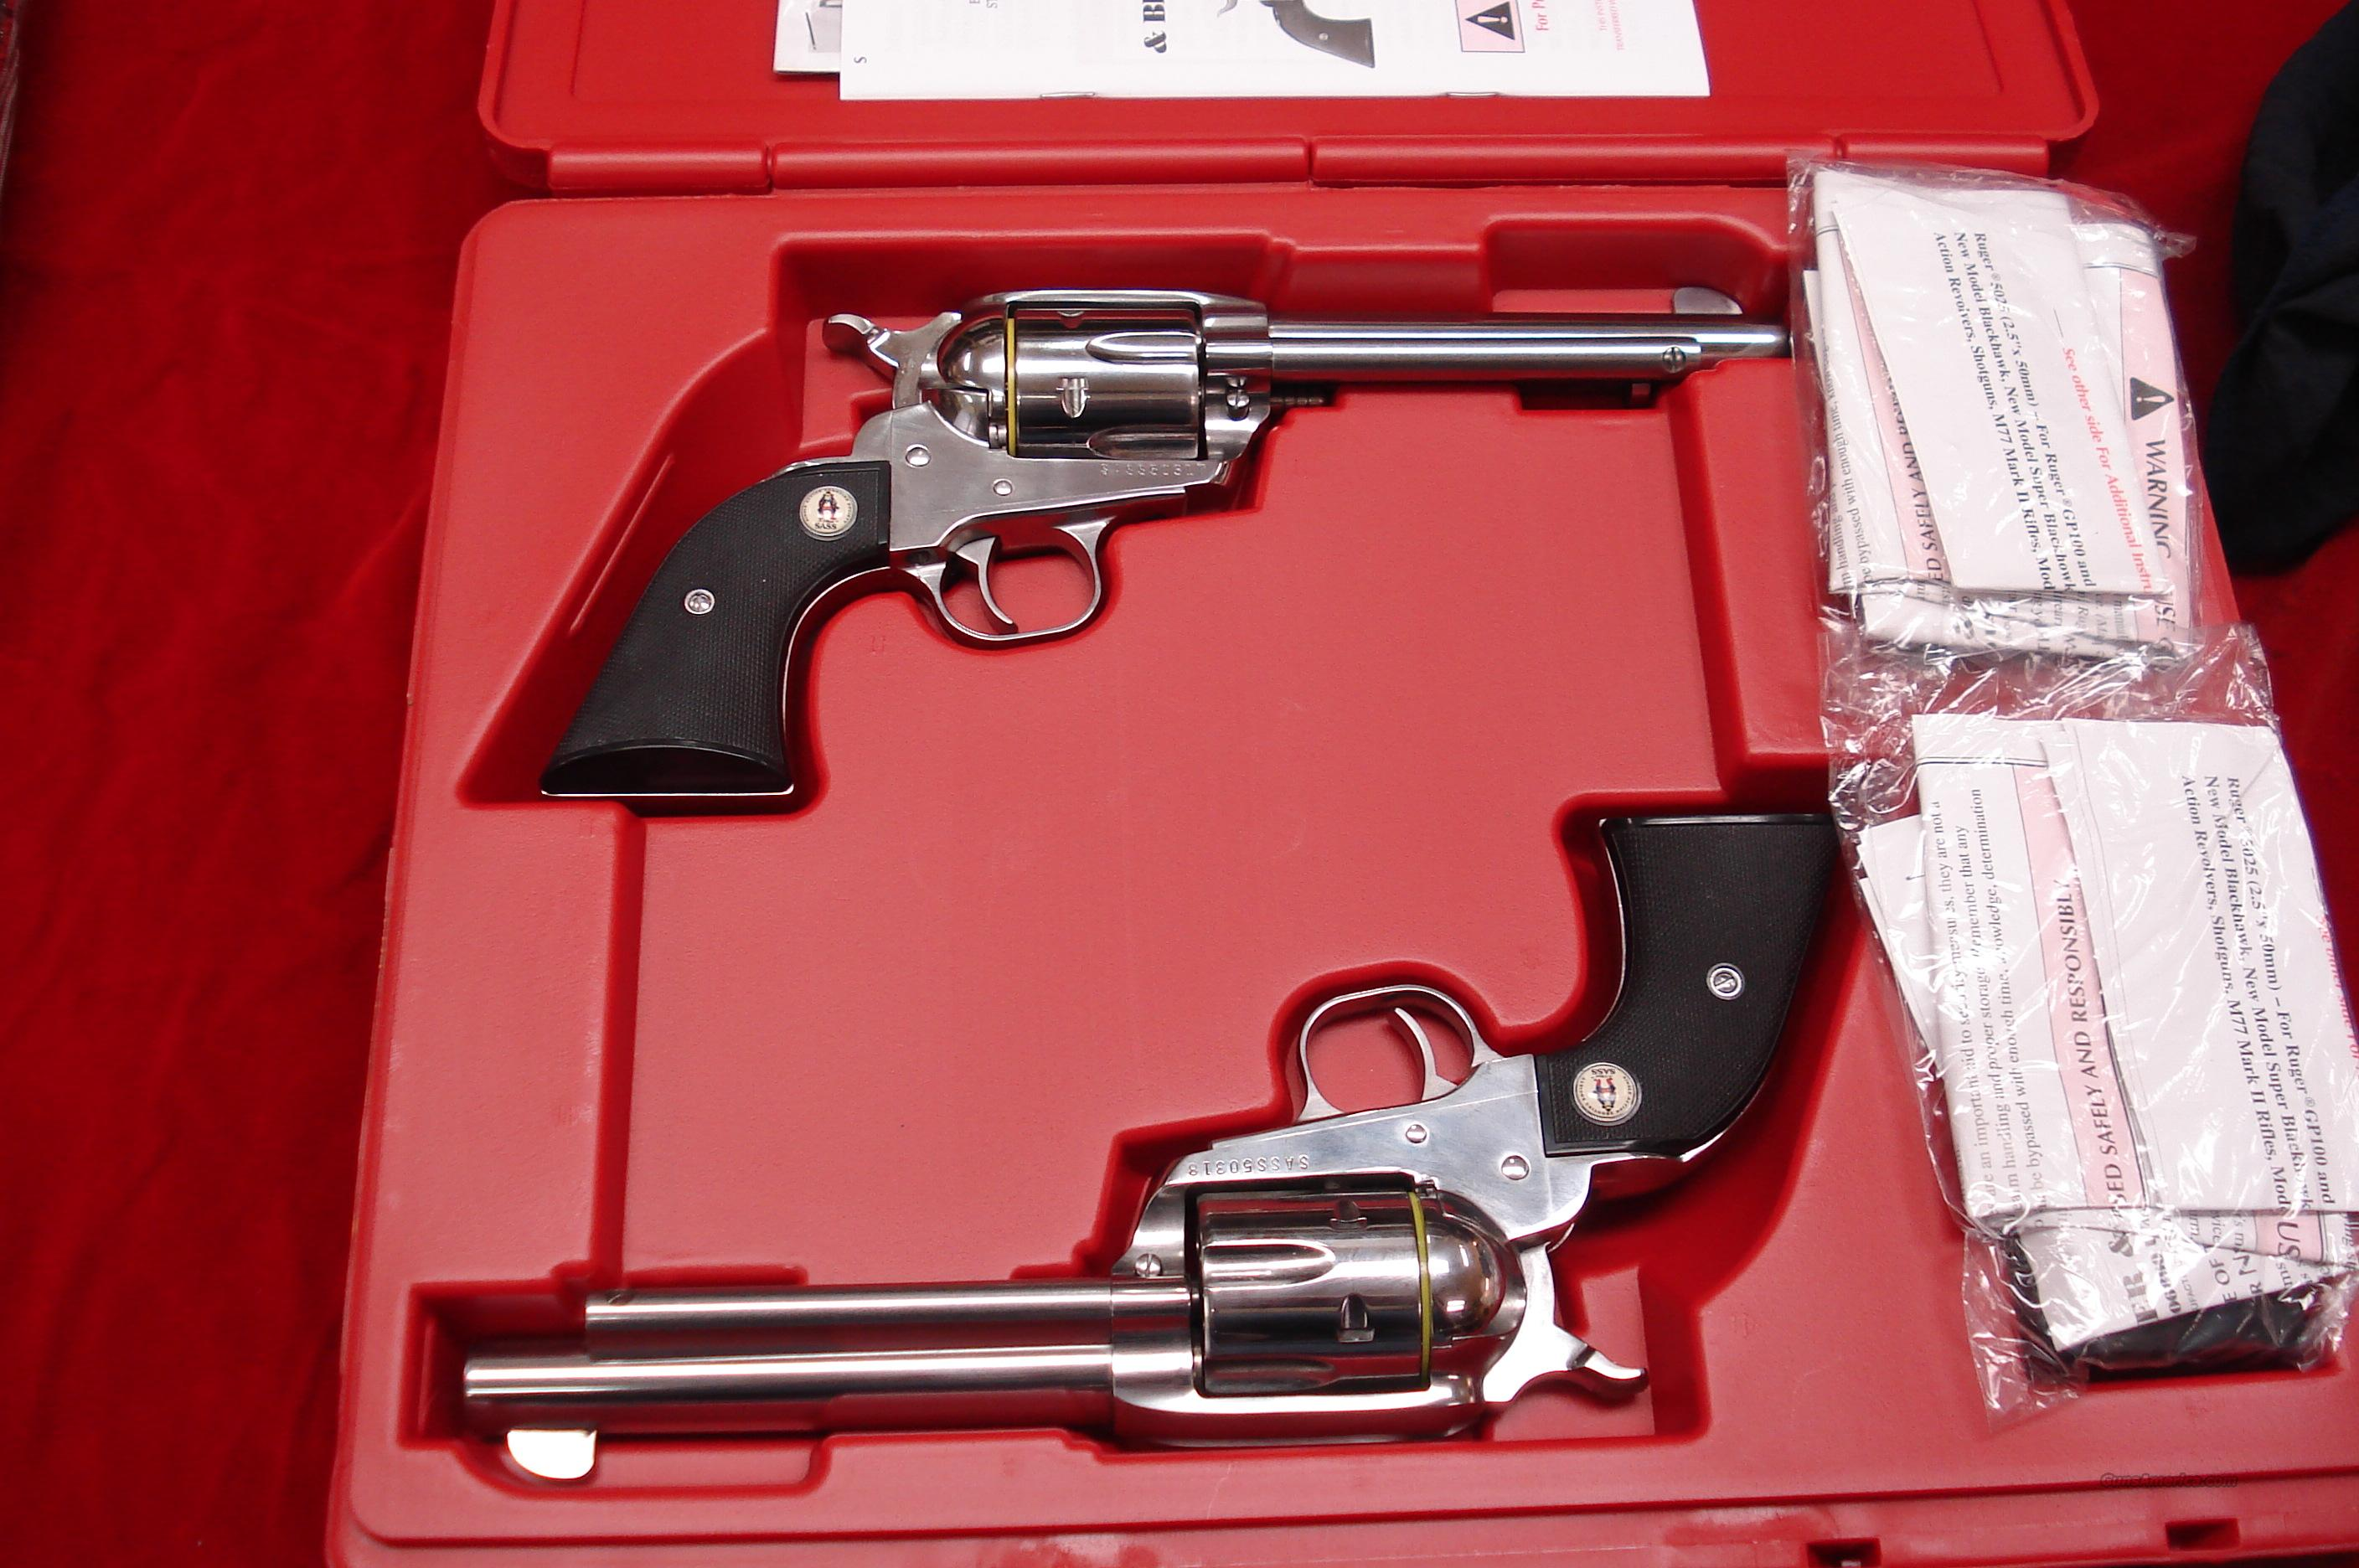 RUGER SASS VAQUERO MATCHED SET POLISHED STAINLESS .45 COLT CAL. NEW  Guns > Pistols > Ruger Single Action Revolvers > Cowboy Action